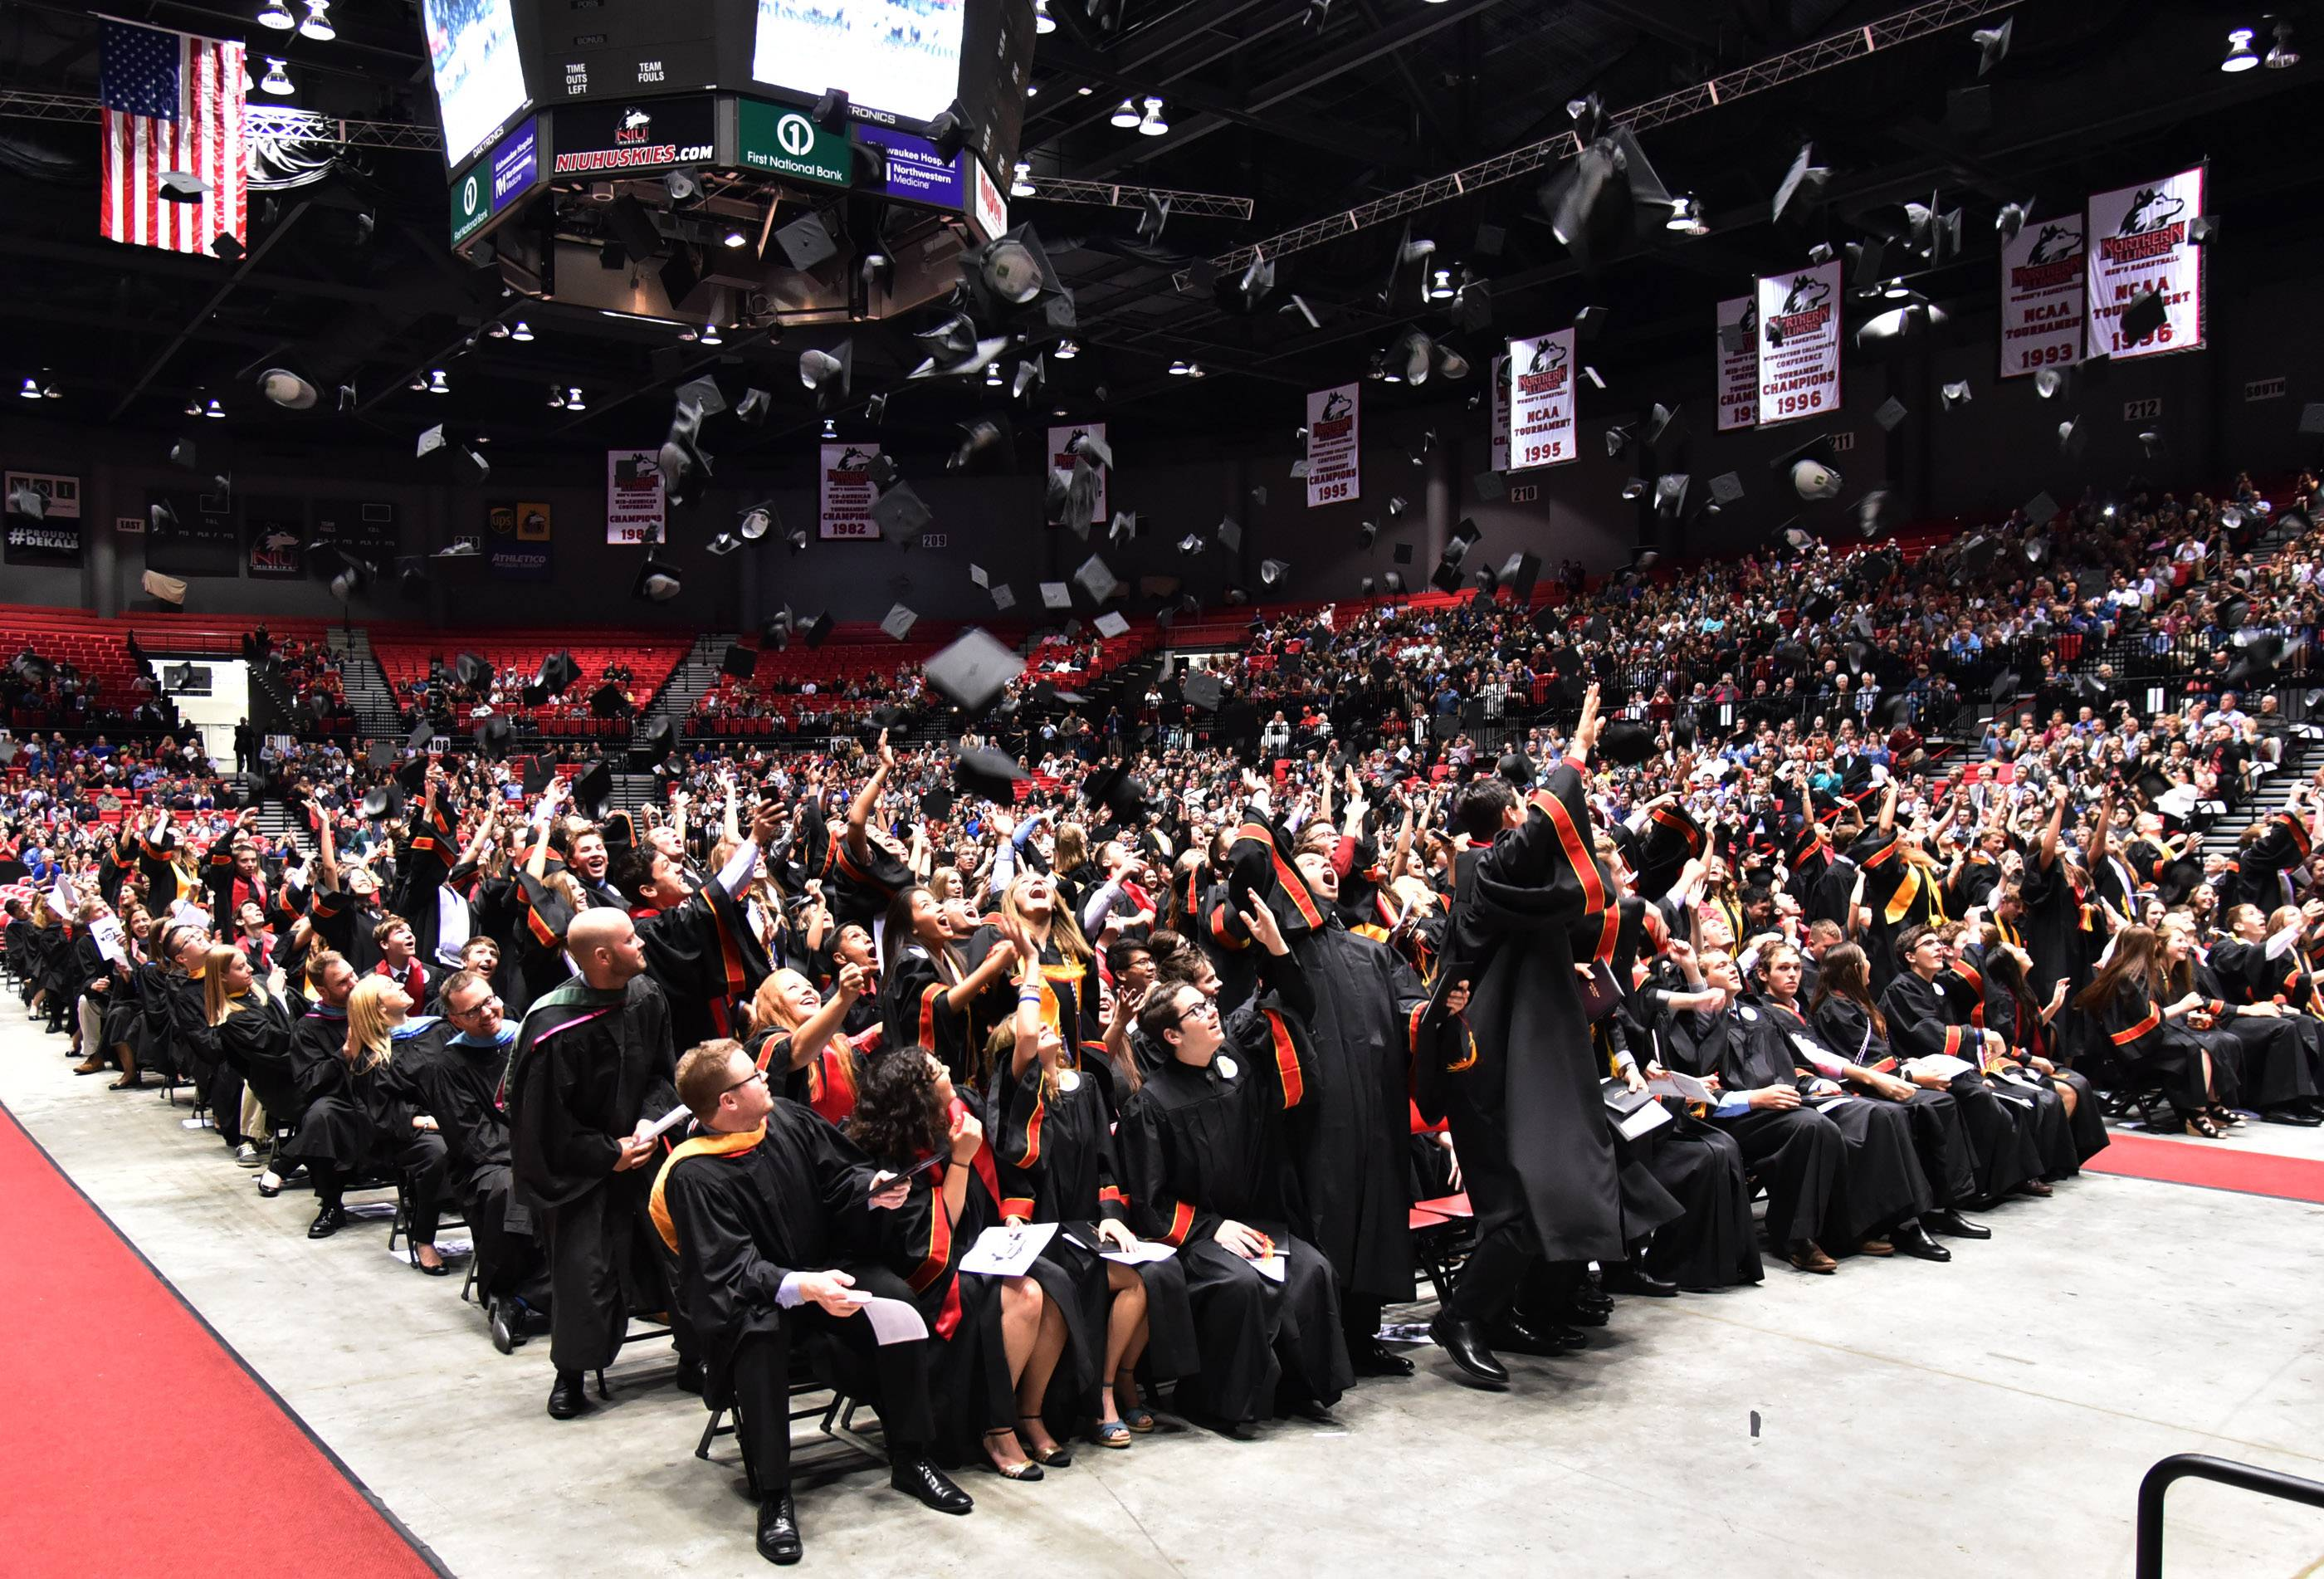 The Batavia High School class of 2017 graduates throw their mortar boards in the air at the end of their commmencement ceremony at Northern Illinois University in DeKalb Wednesday.